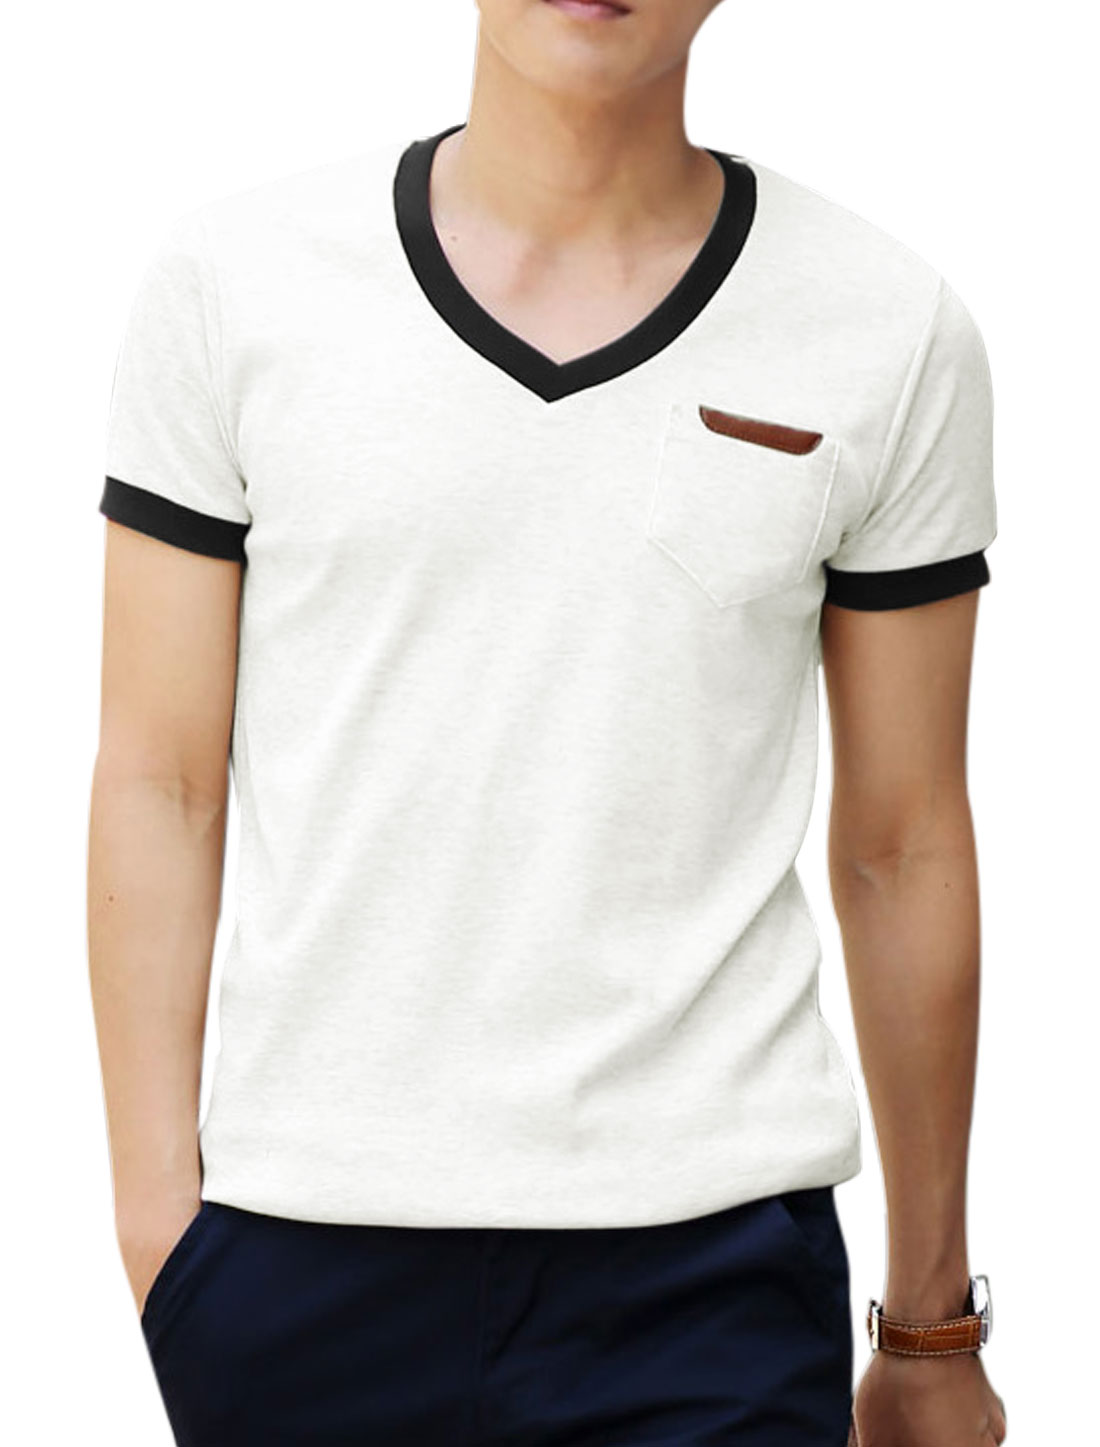 Summer Breast Pocket Panel Pullover Cozy Fit Tee for Men White M